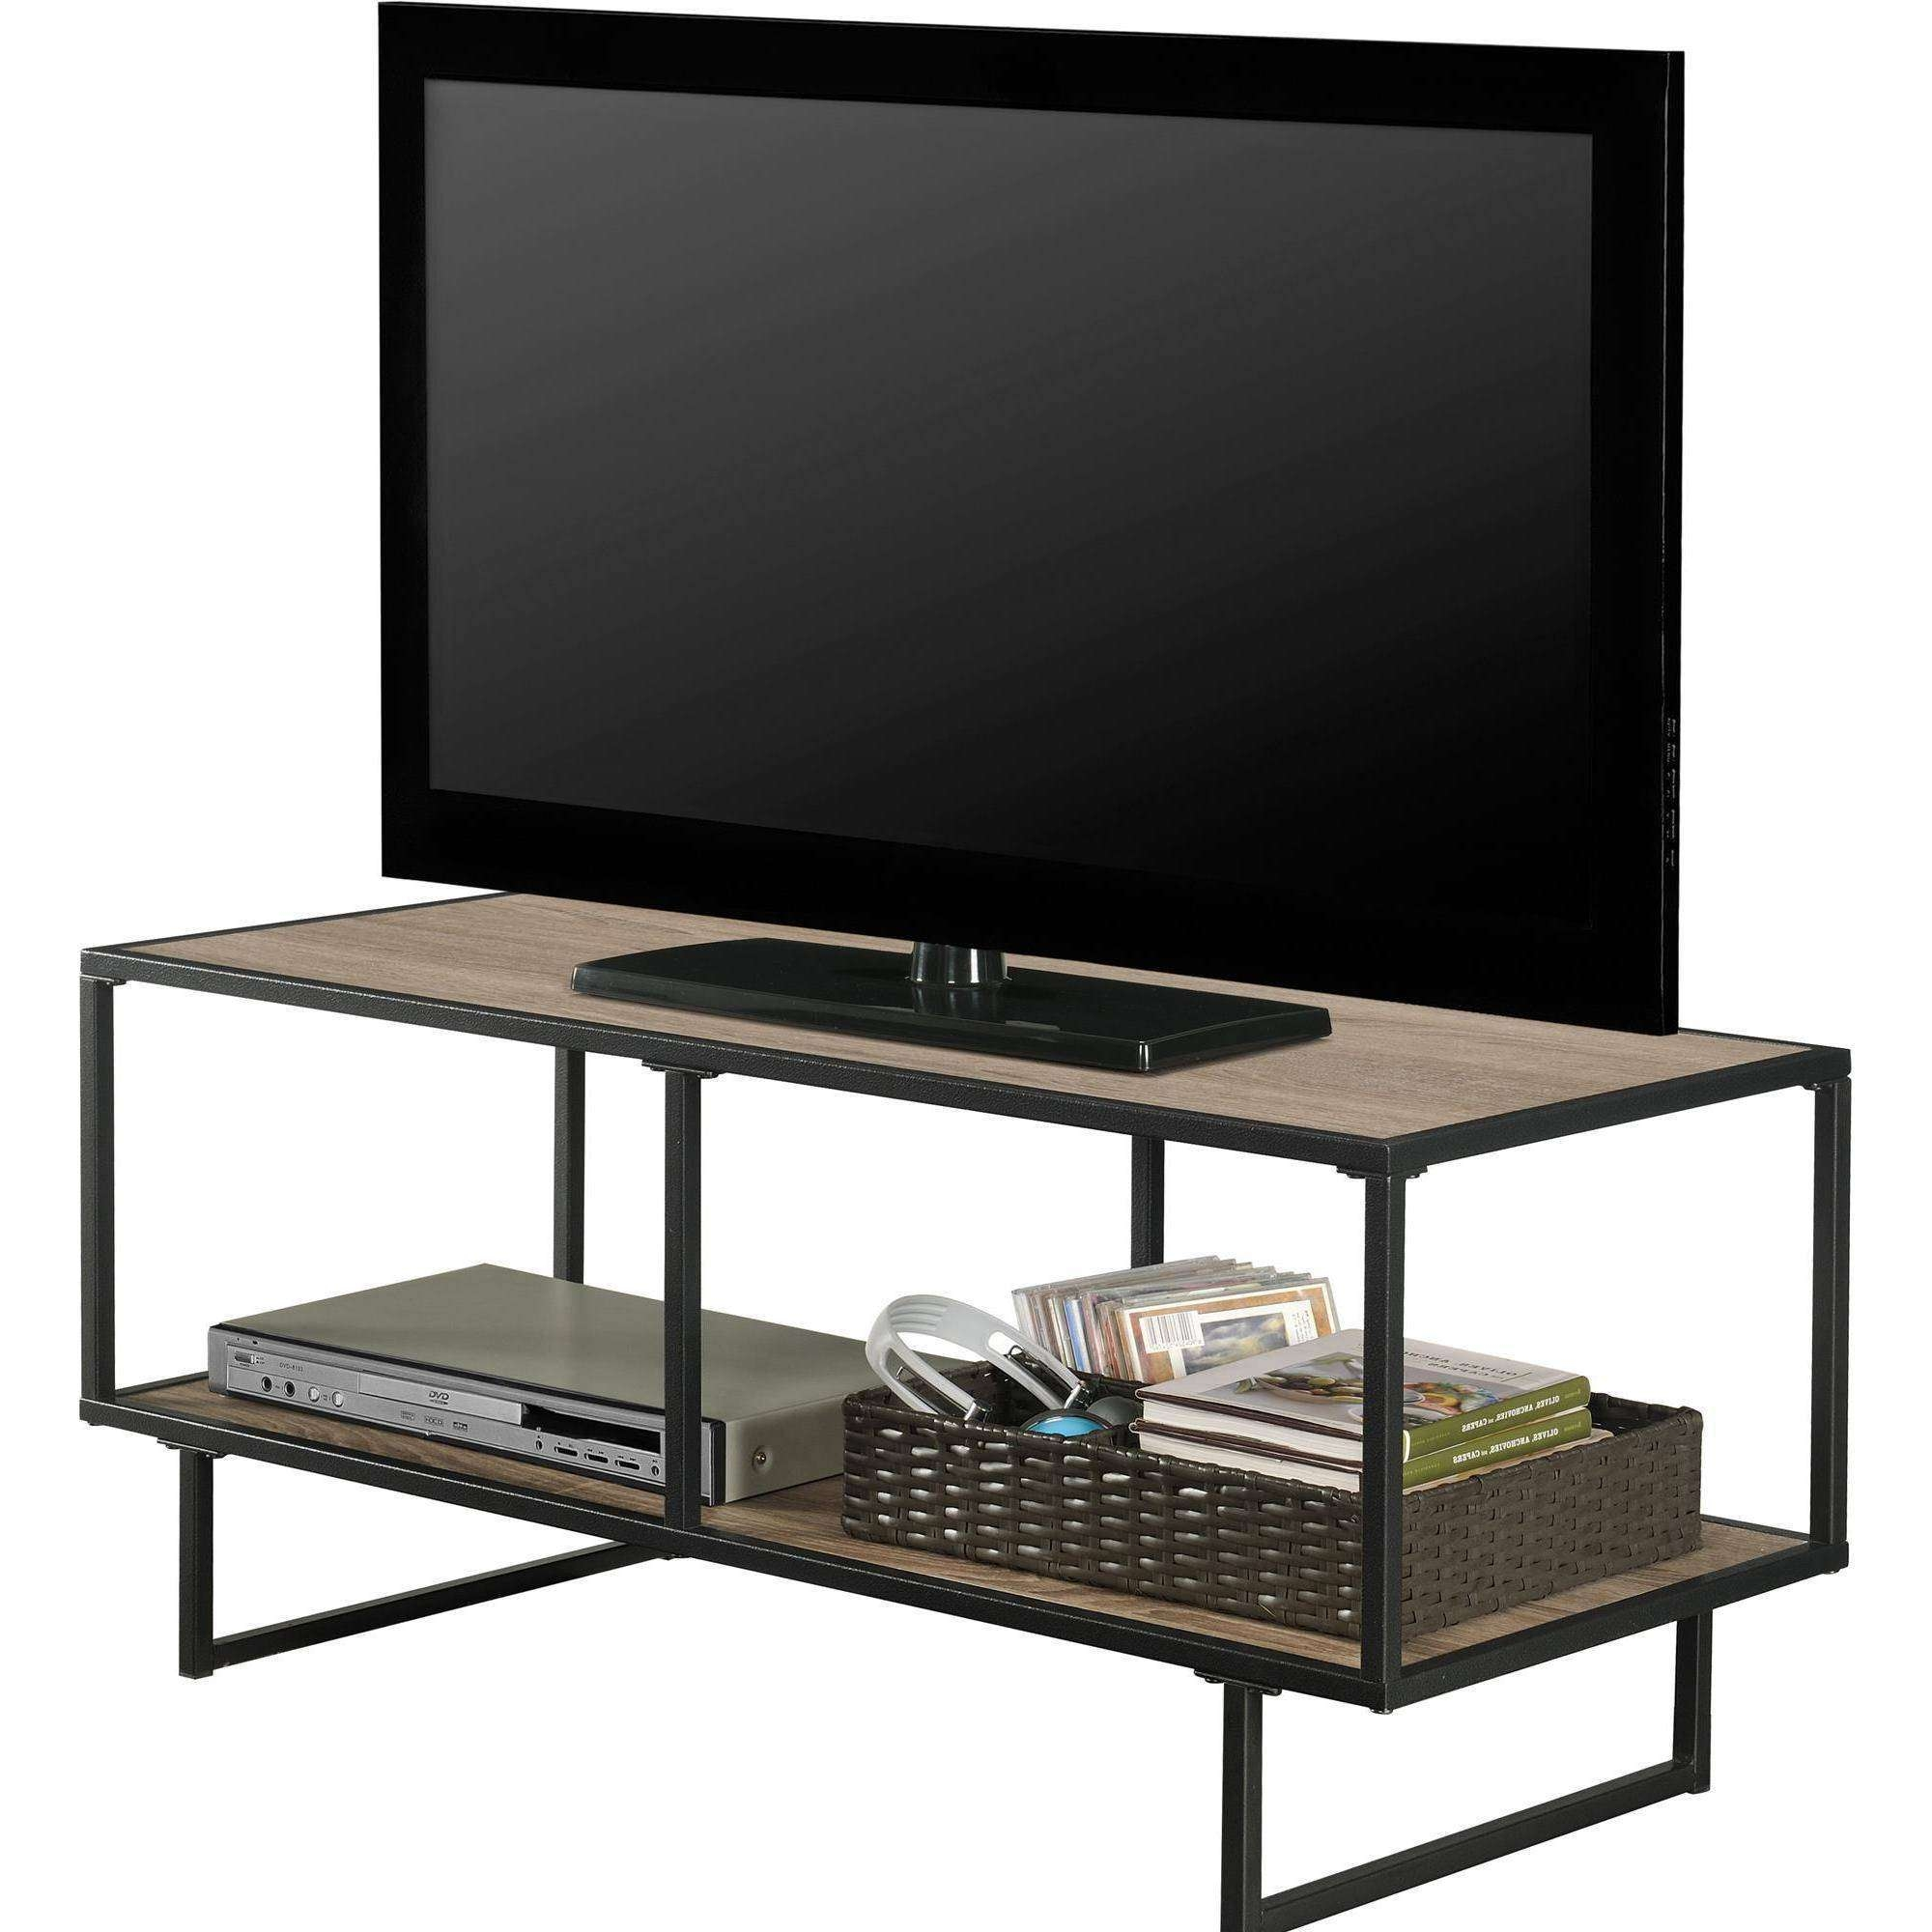 Altra Furniture Emmett 1 Shelf Tv Stand Coffee Table In Sonoma Oak In Most Recent Tv Stand Coffee Table Sets (View 3 of 20)